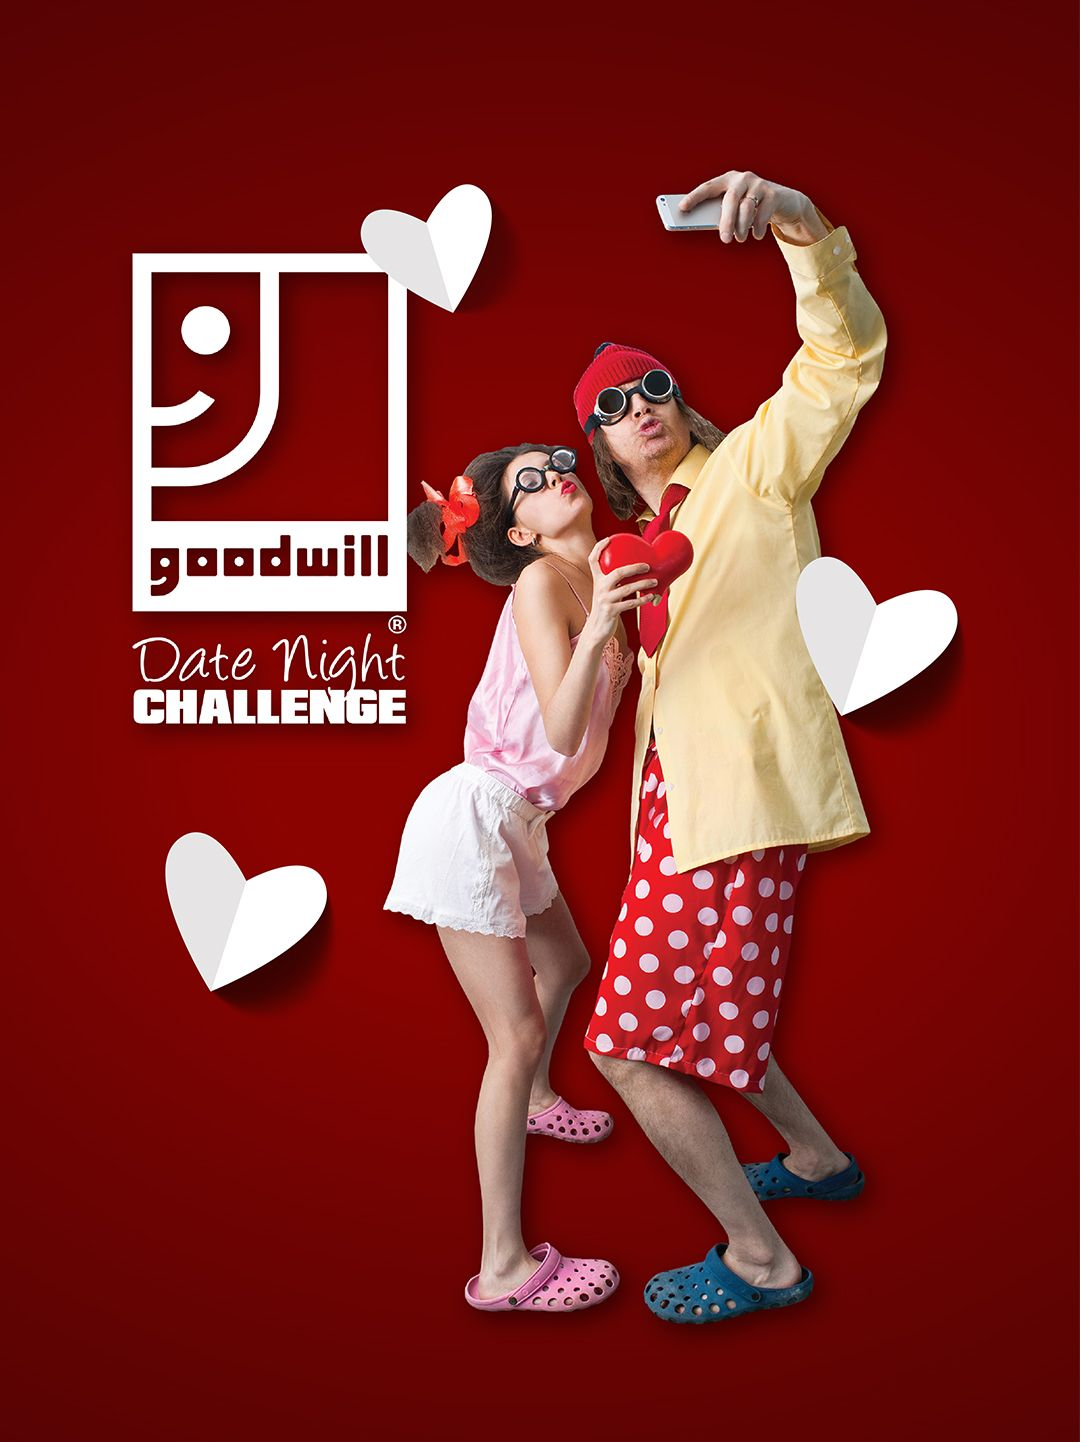 February is here which means the goodwill date night